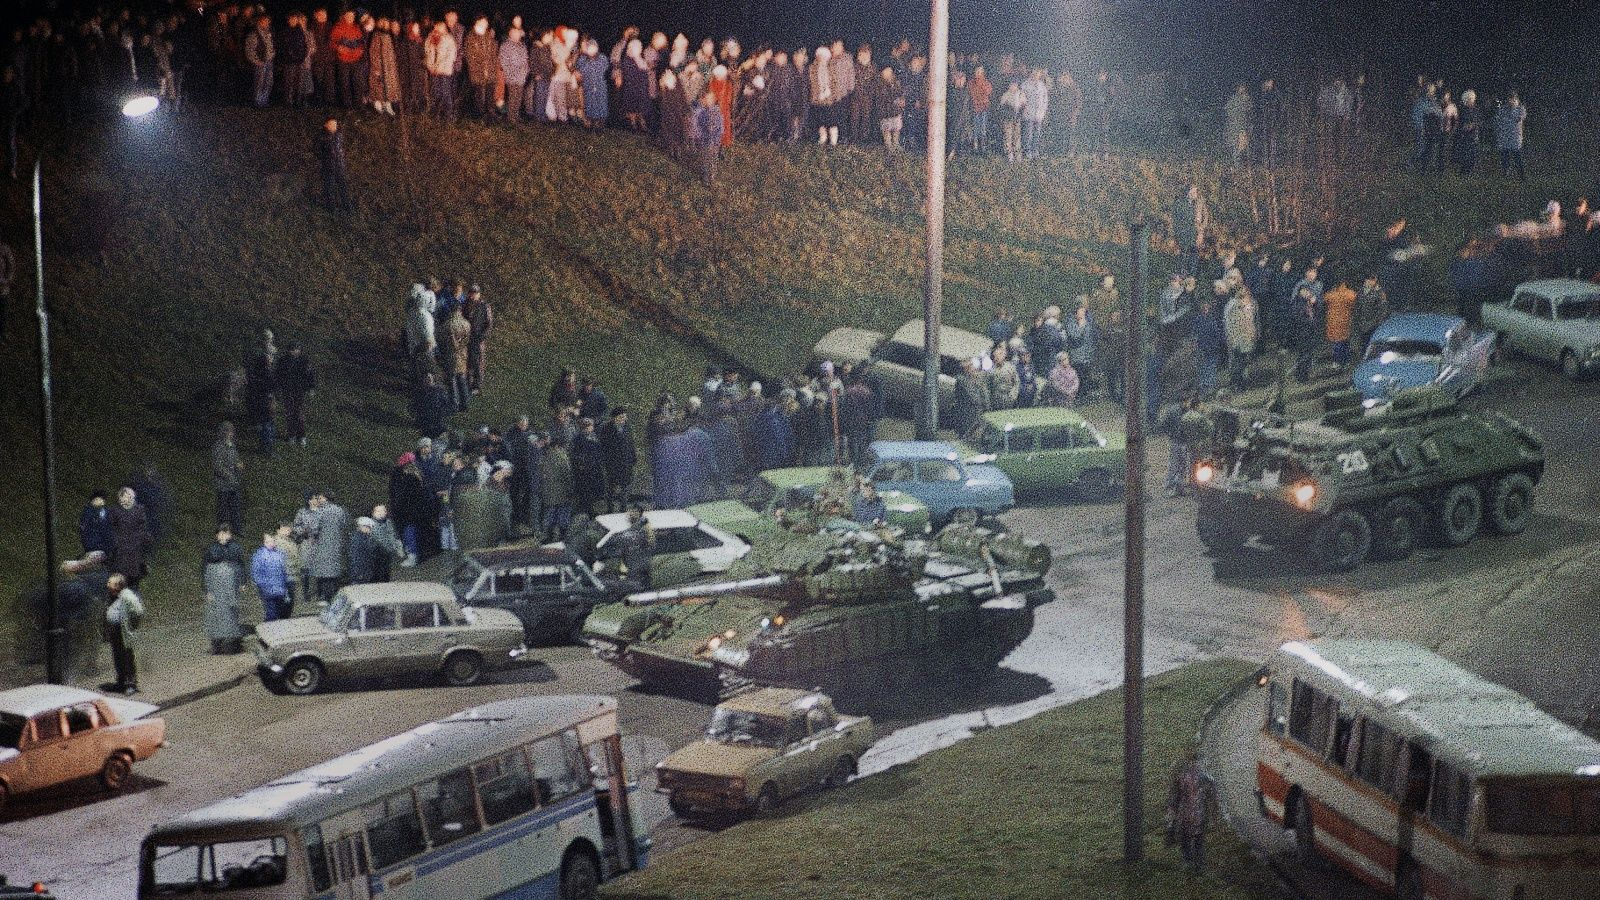 On the night of January 13, stormed the television station in Vilnius